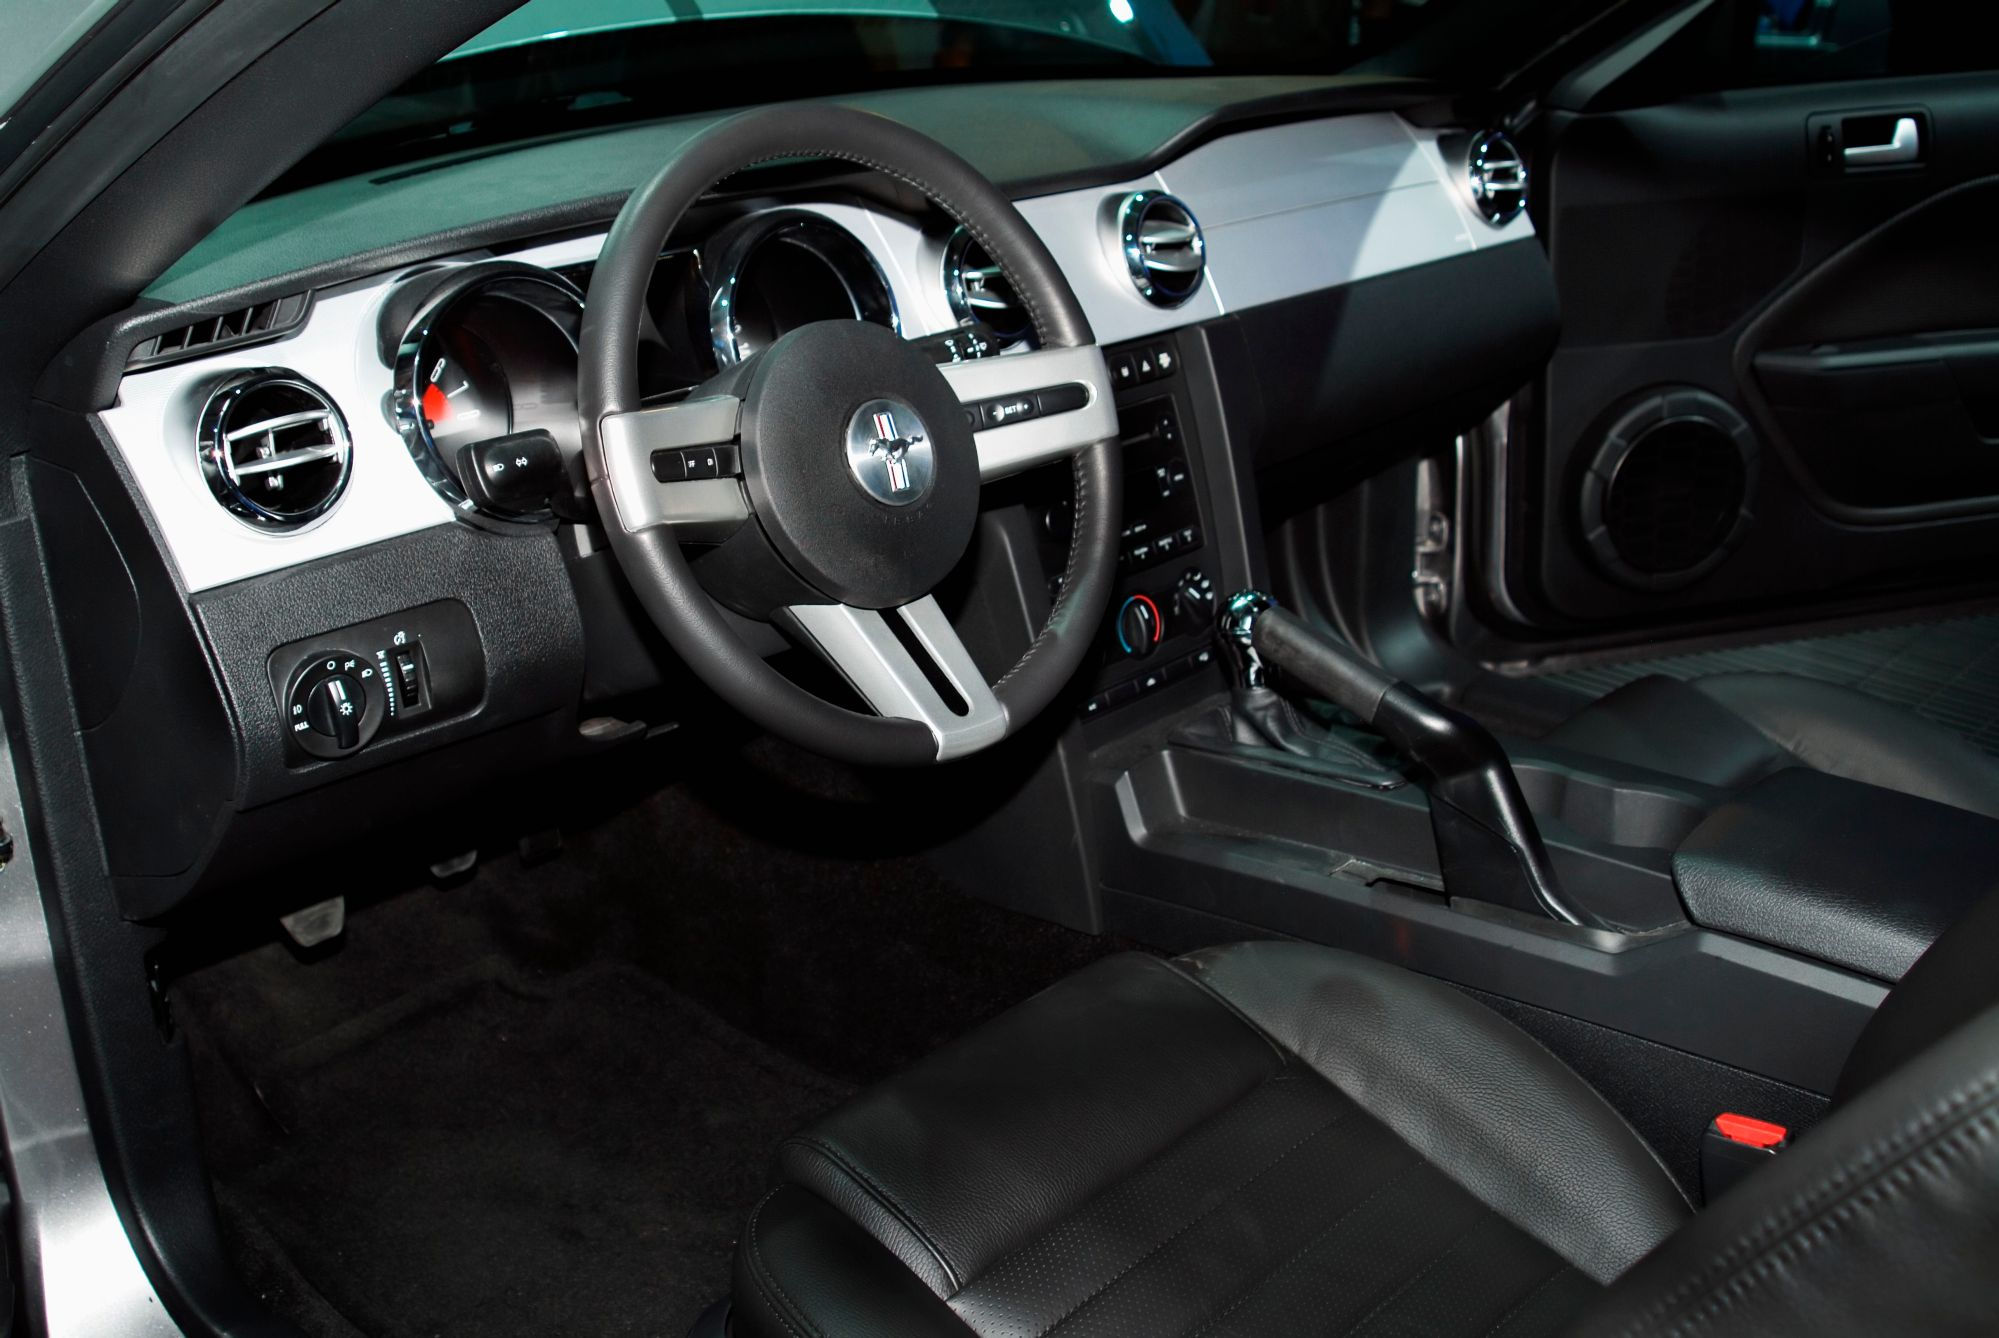 hight resolution of 2004 ford mustang gt interior